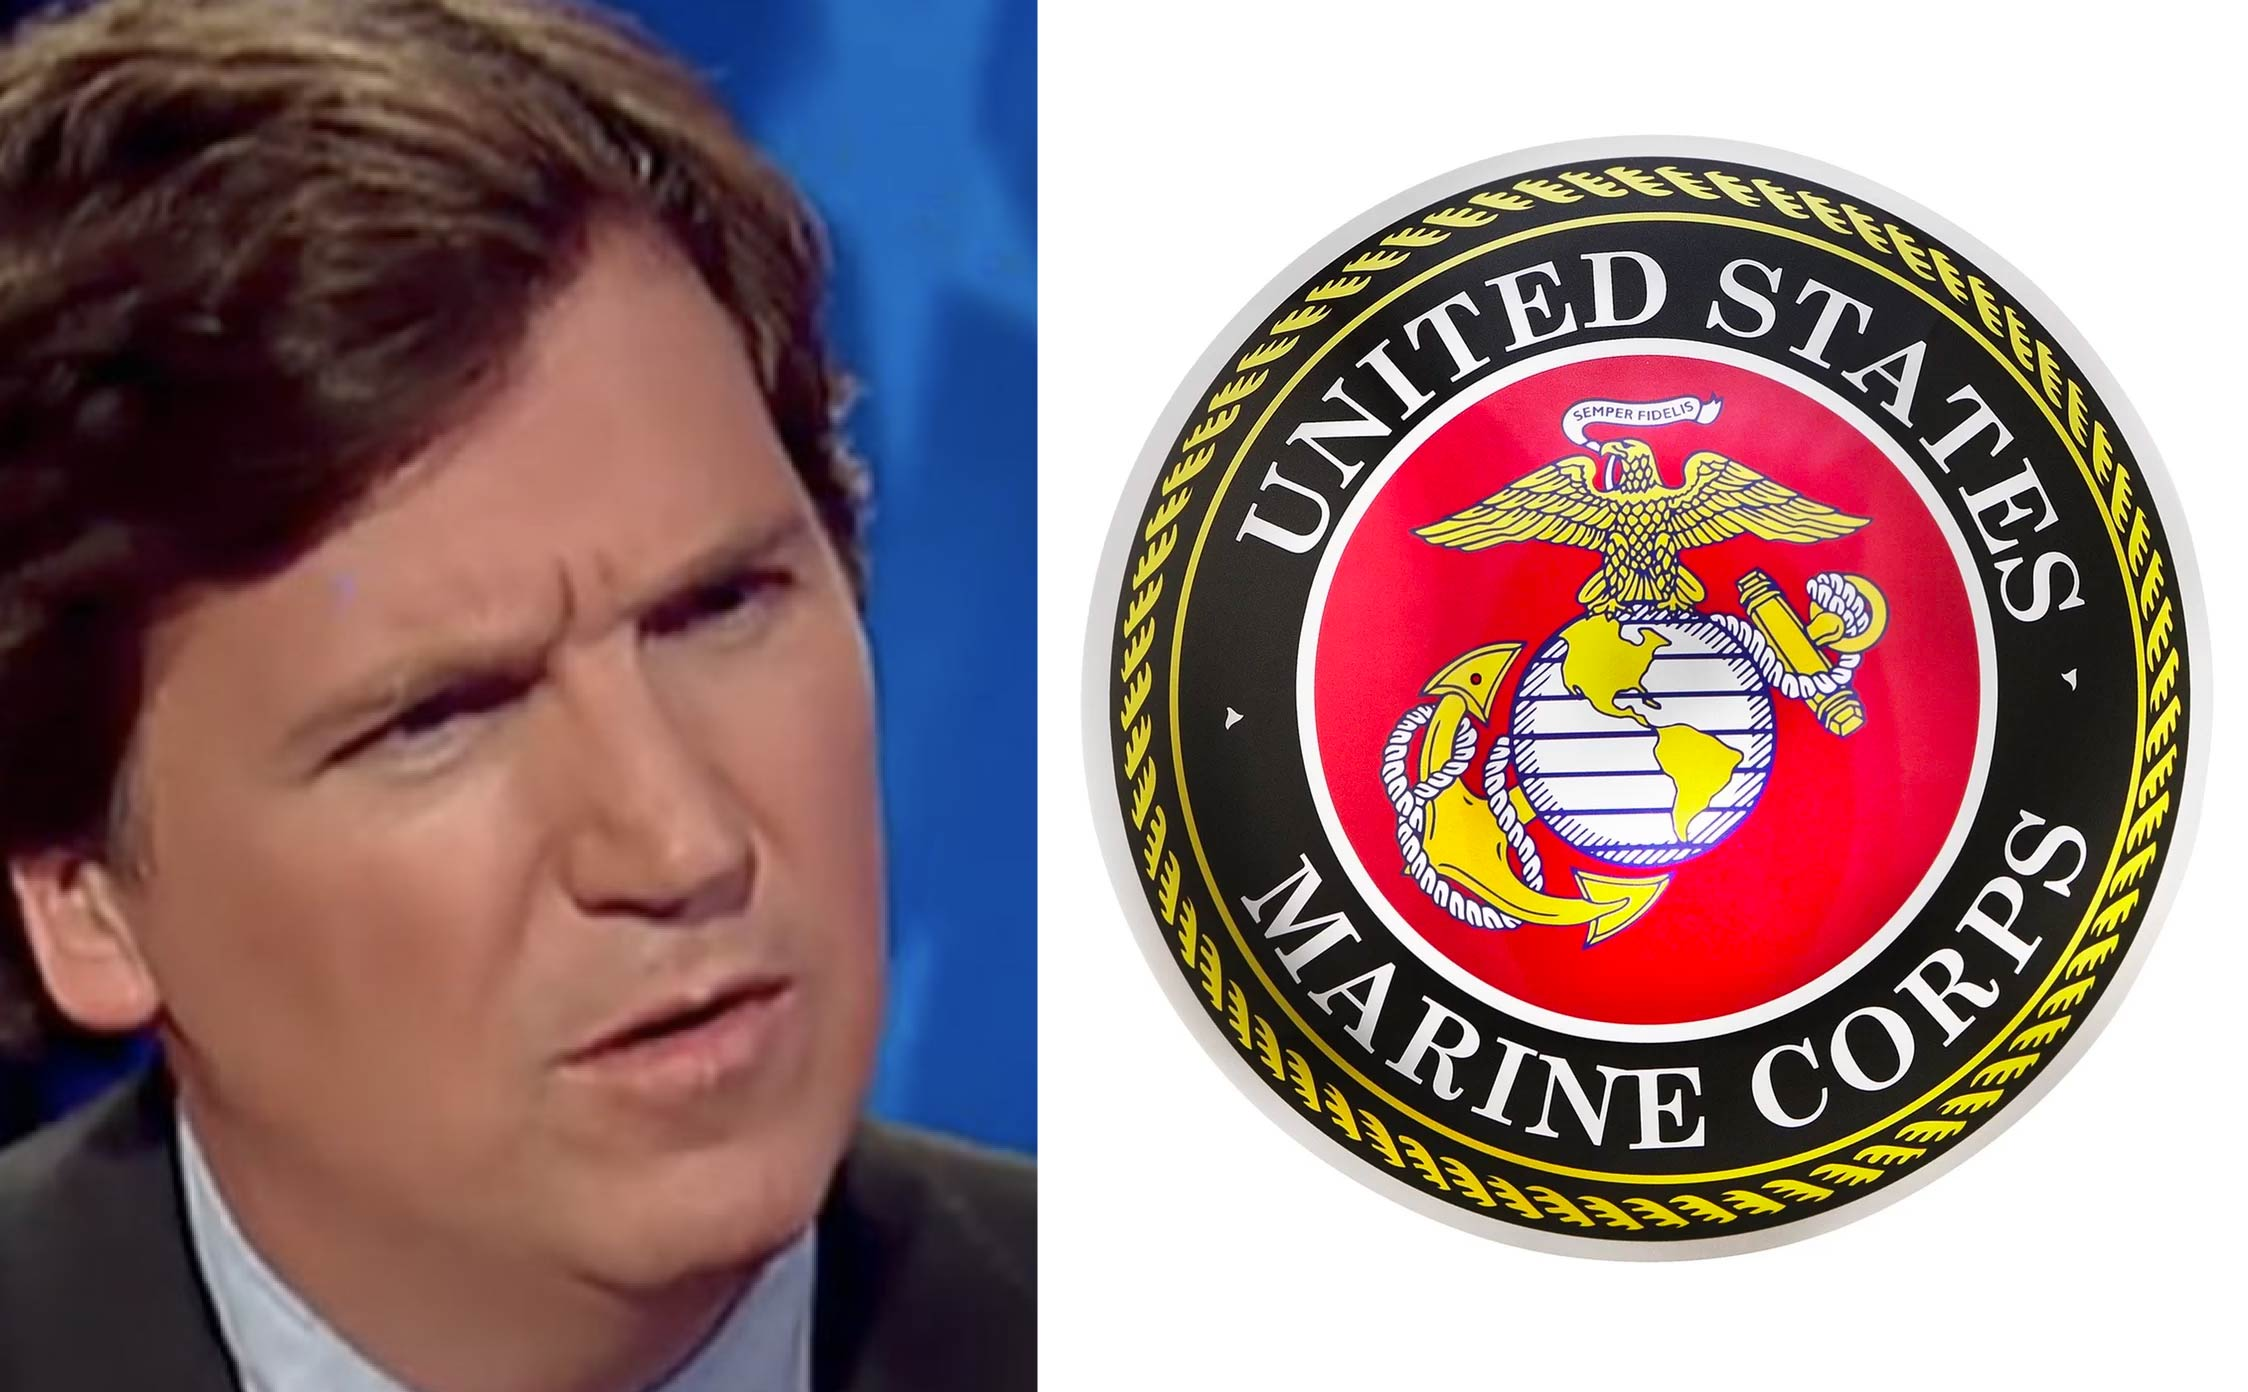 US Marine Corps Official Twitter Account Forced to Issue 2 Apologies After Attacking Tucker